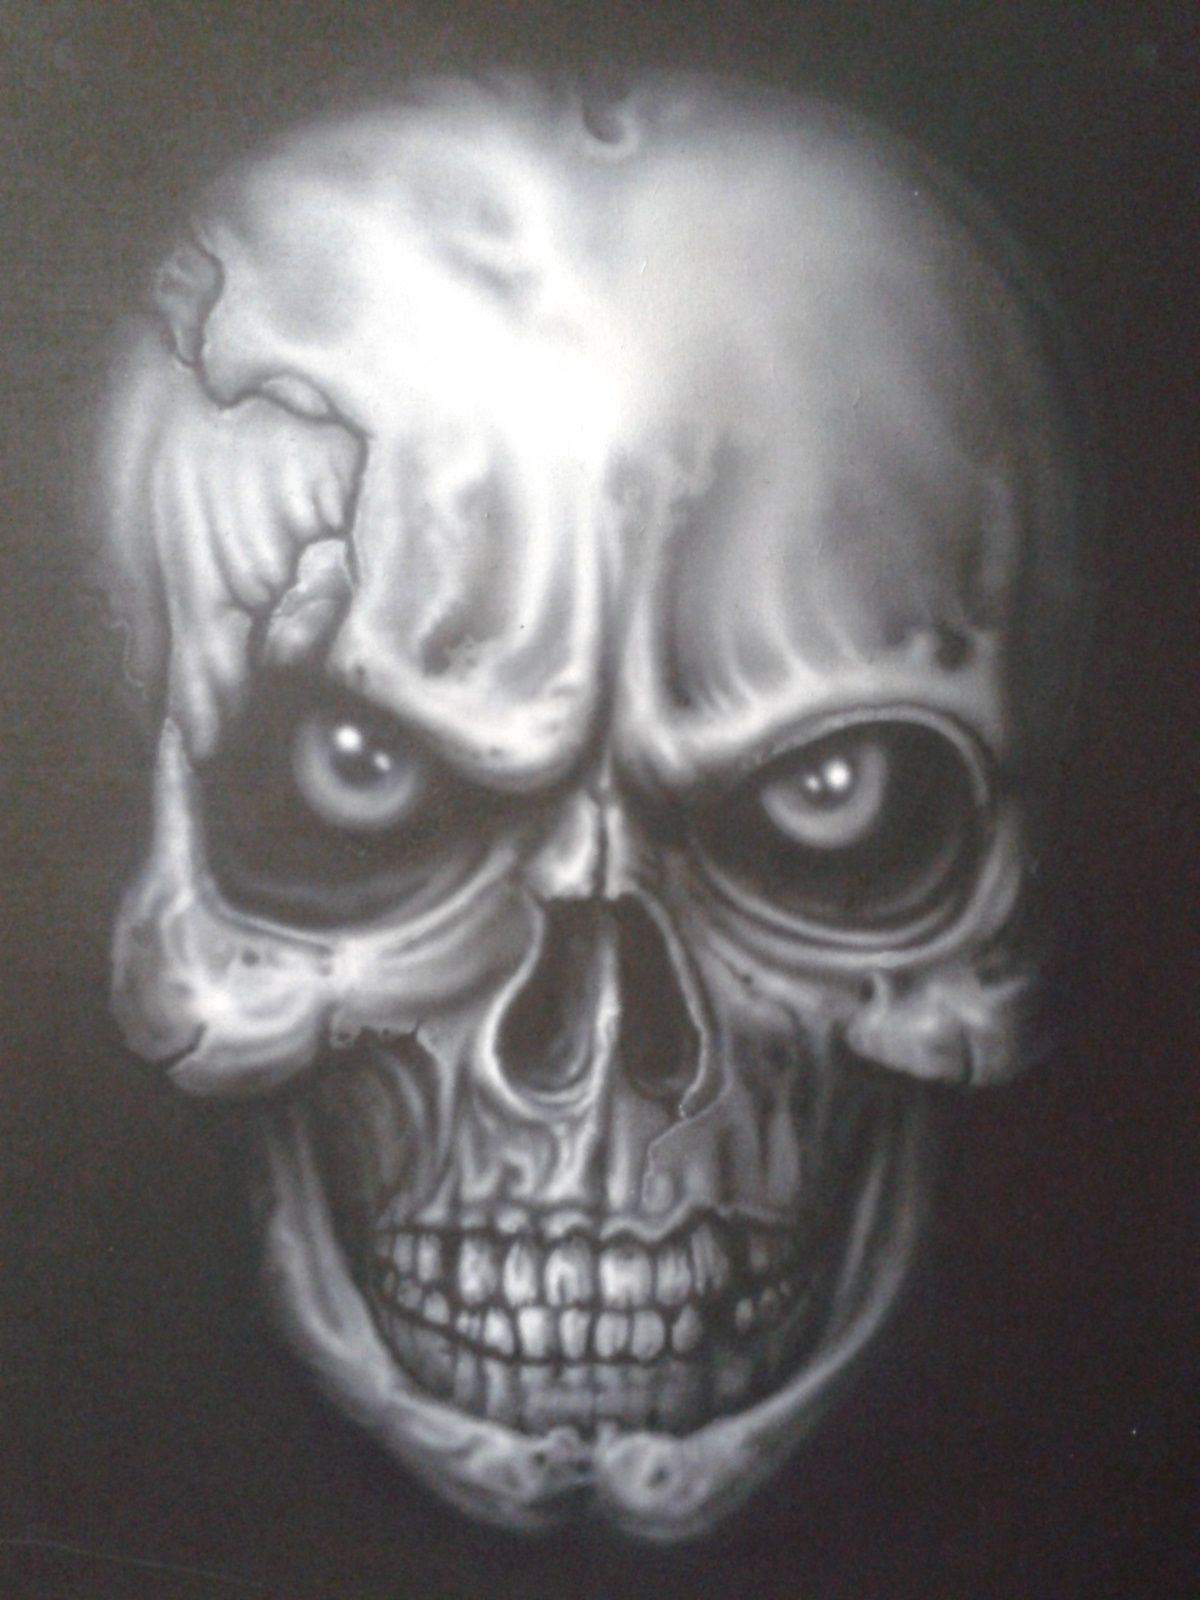 Air Brushed Skull Skull Painted By Me Artist Fred Vandyk